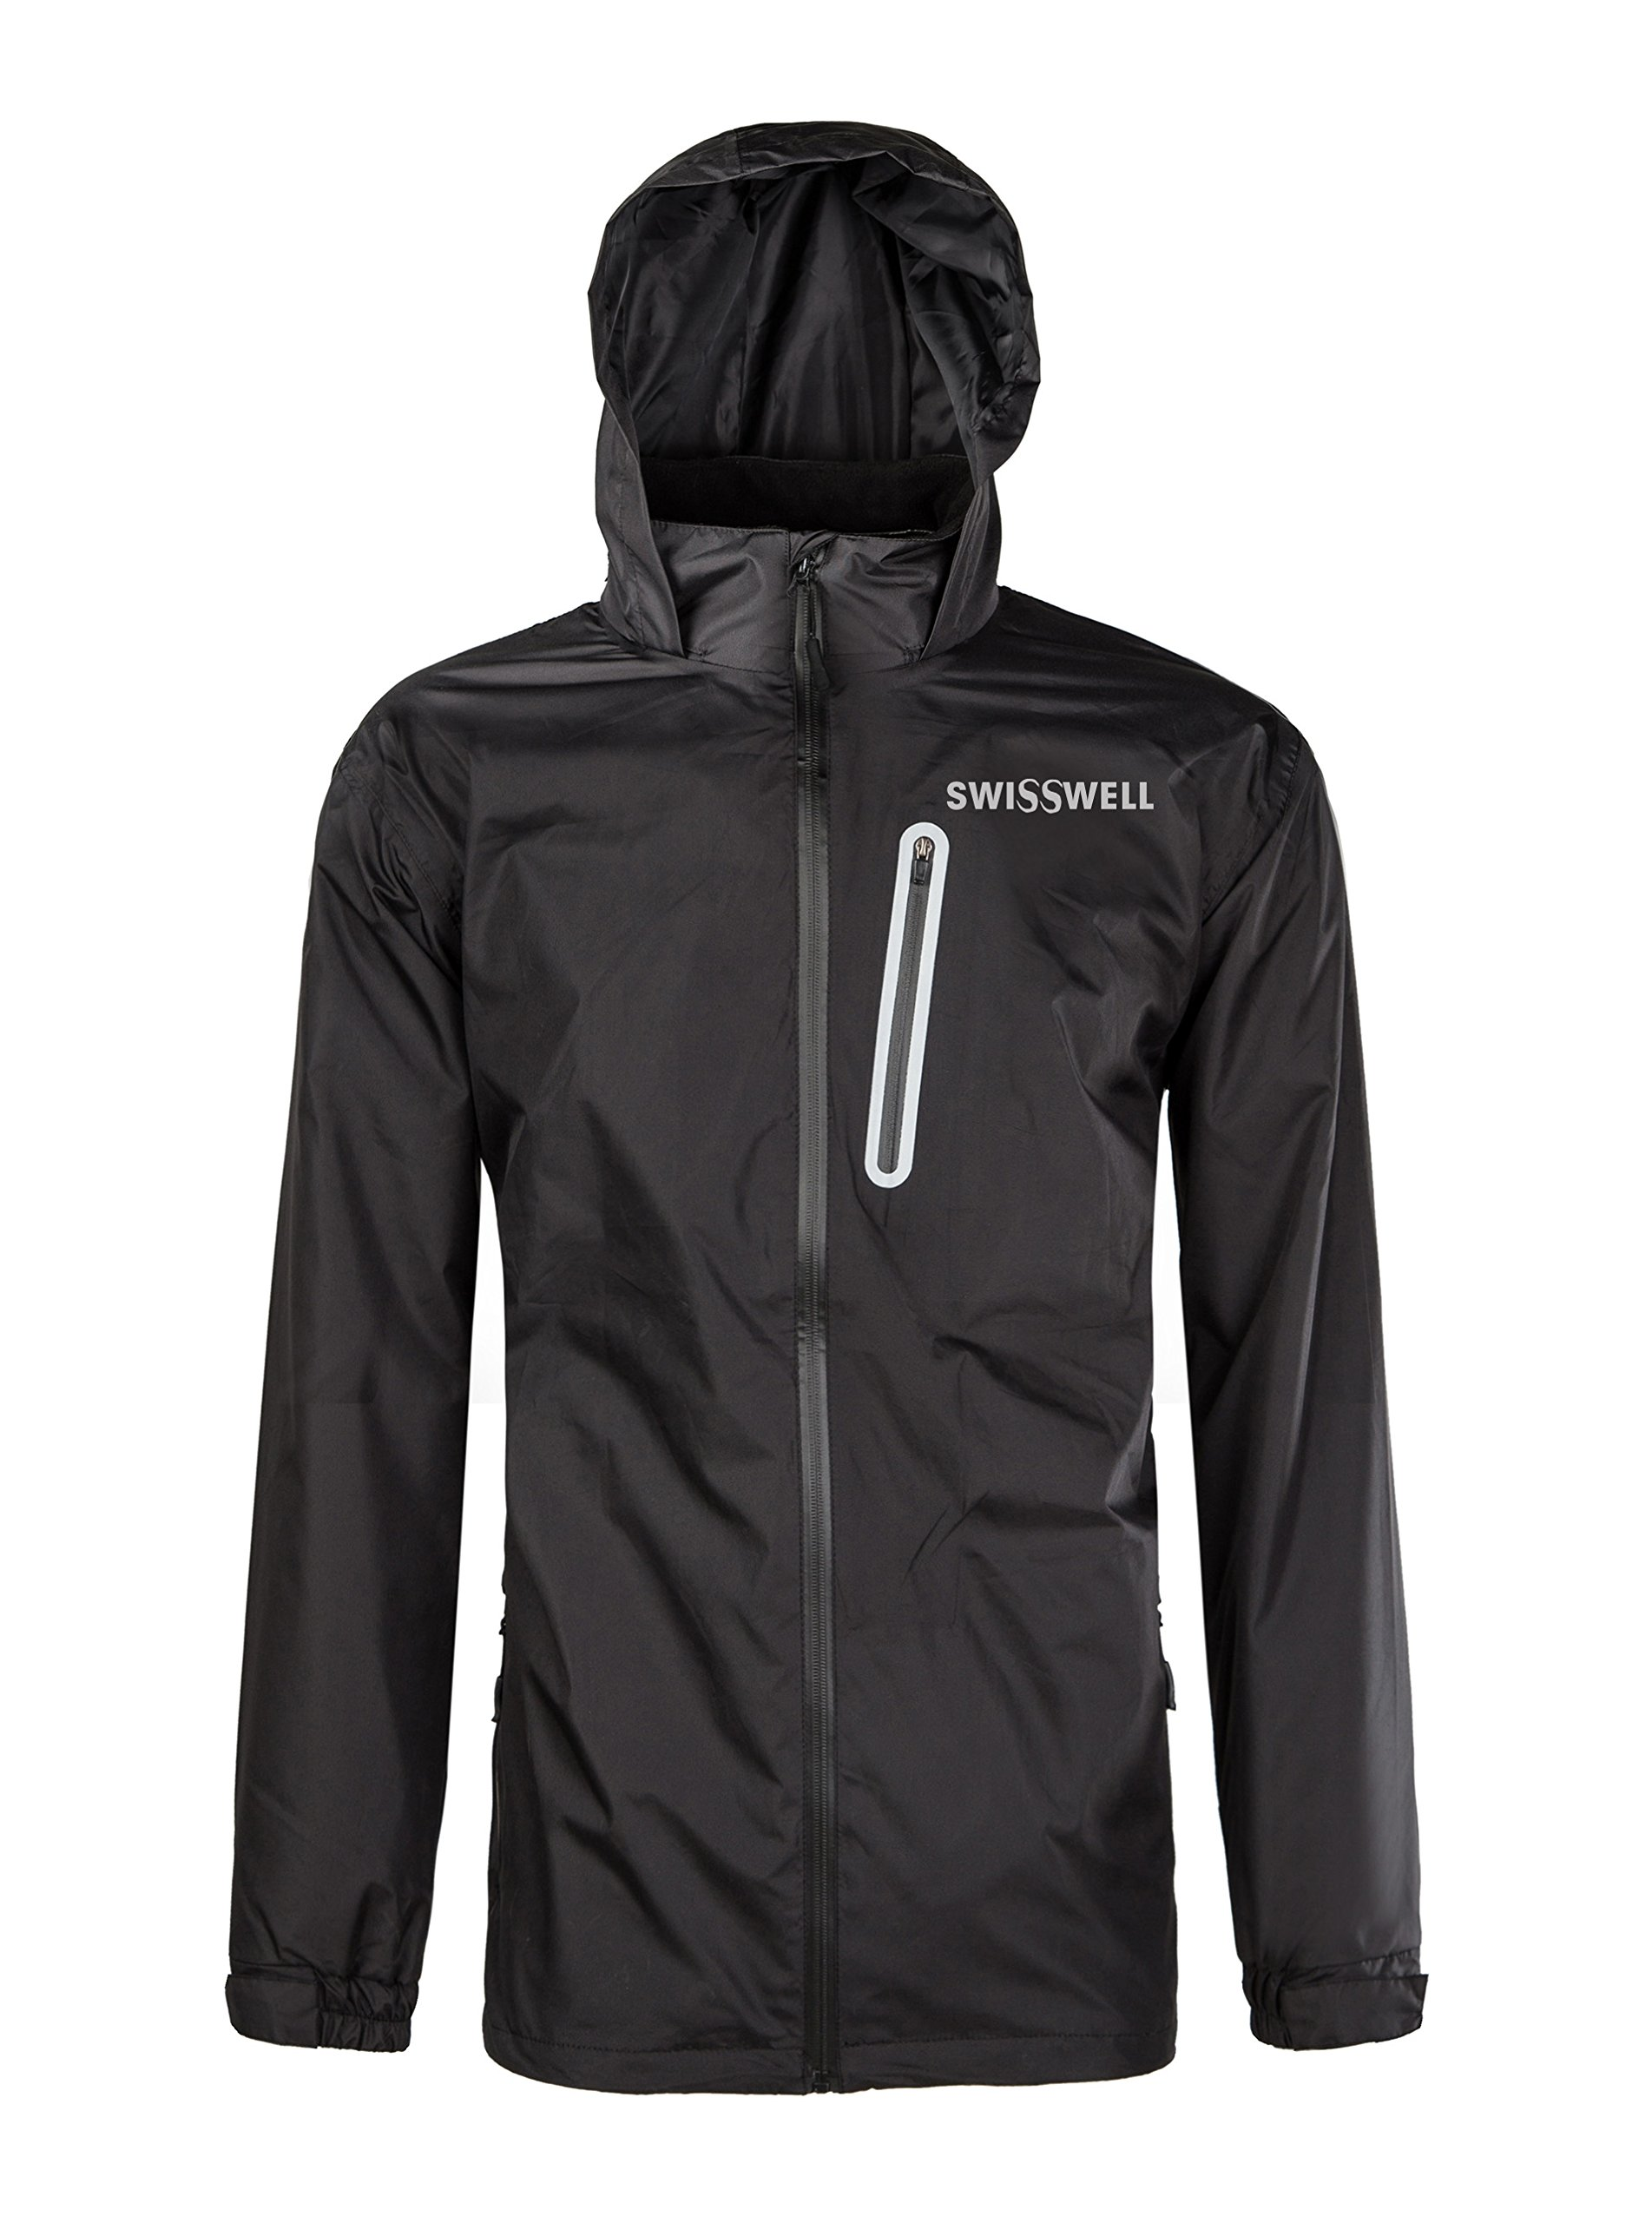 SWISSWELL Men's Waterproof Raincoat with Hood Black Large by SWISSWELL